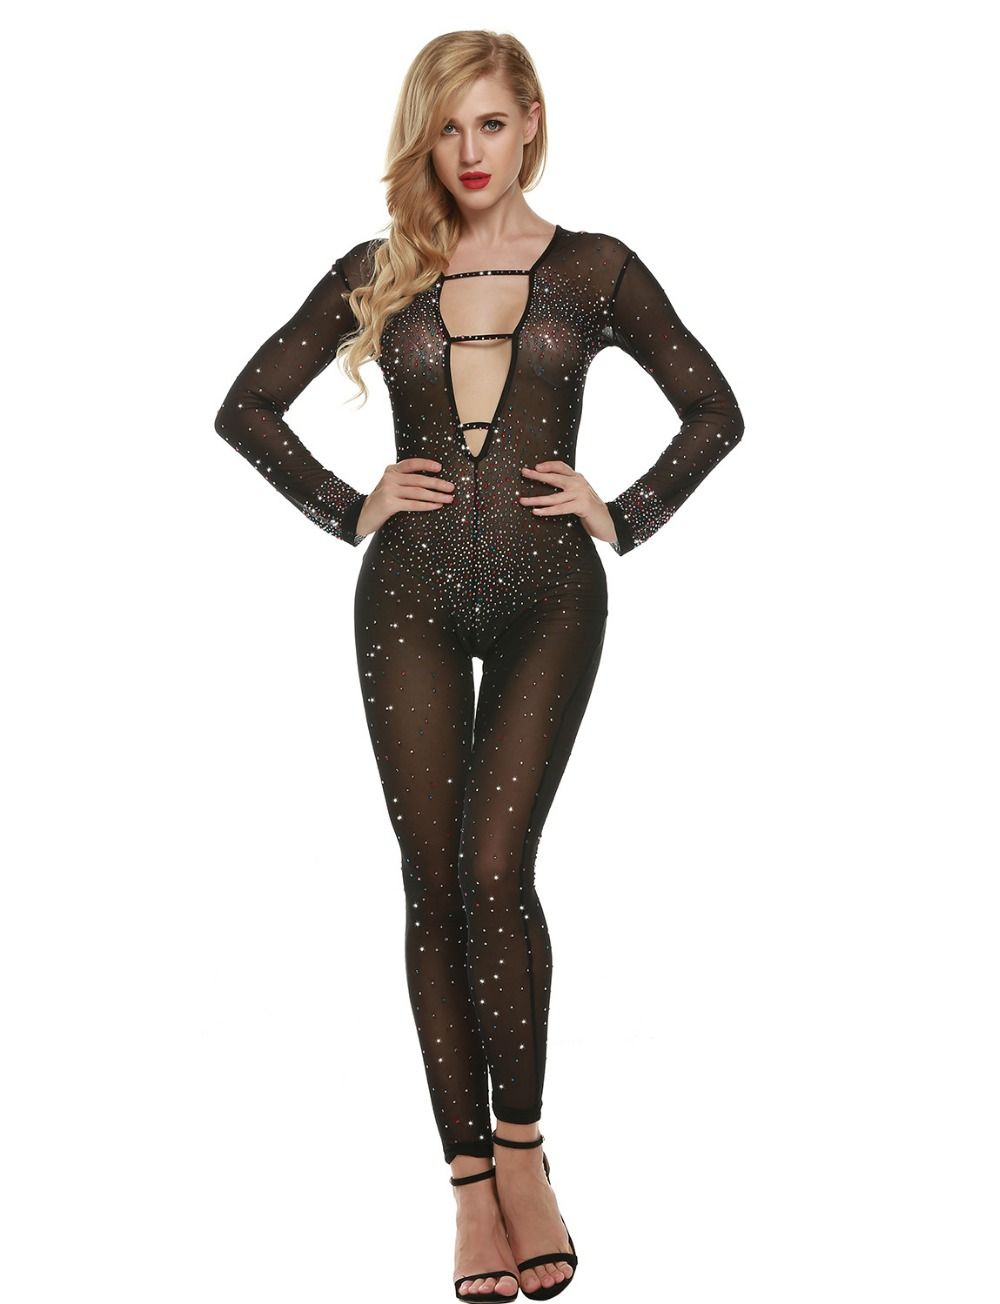 5cd4970d8551 Find More Jumpsuits Information about Hot Sexy Sheer Plunge V neck Bodysuit  Women Rhinestone Jumpsuit Club Party Evening Gown Vestidos Naughty Costumes  ...